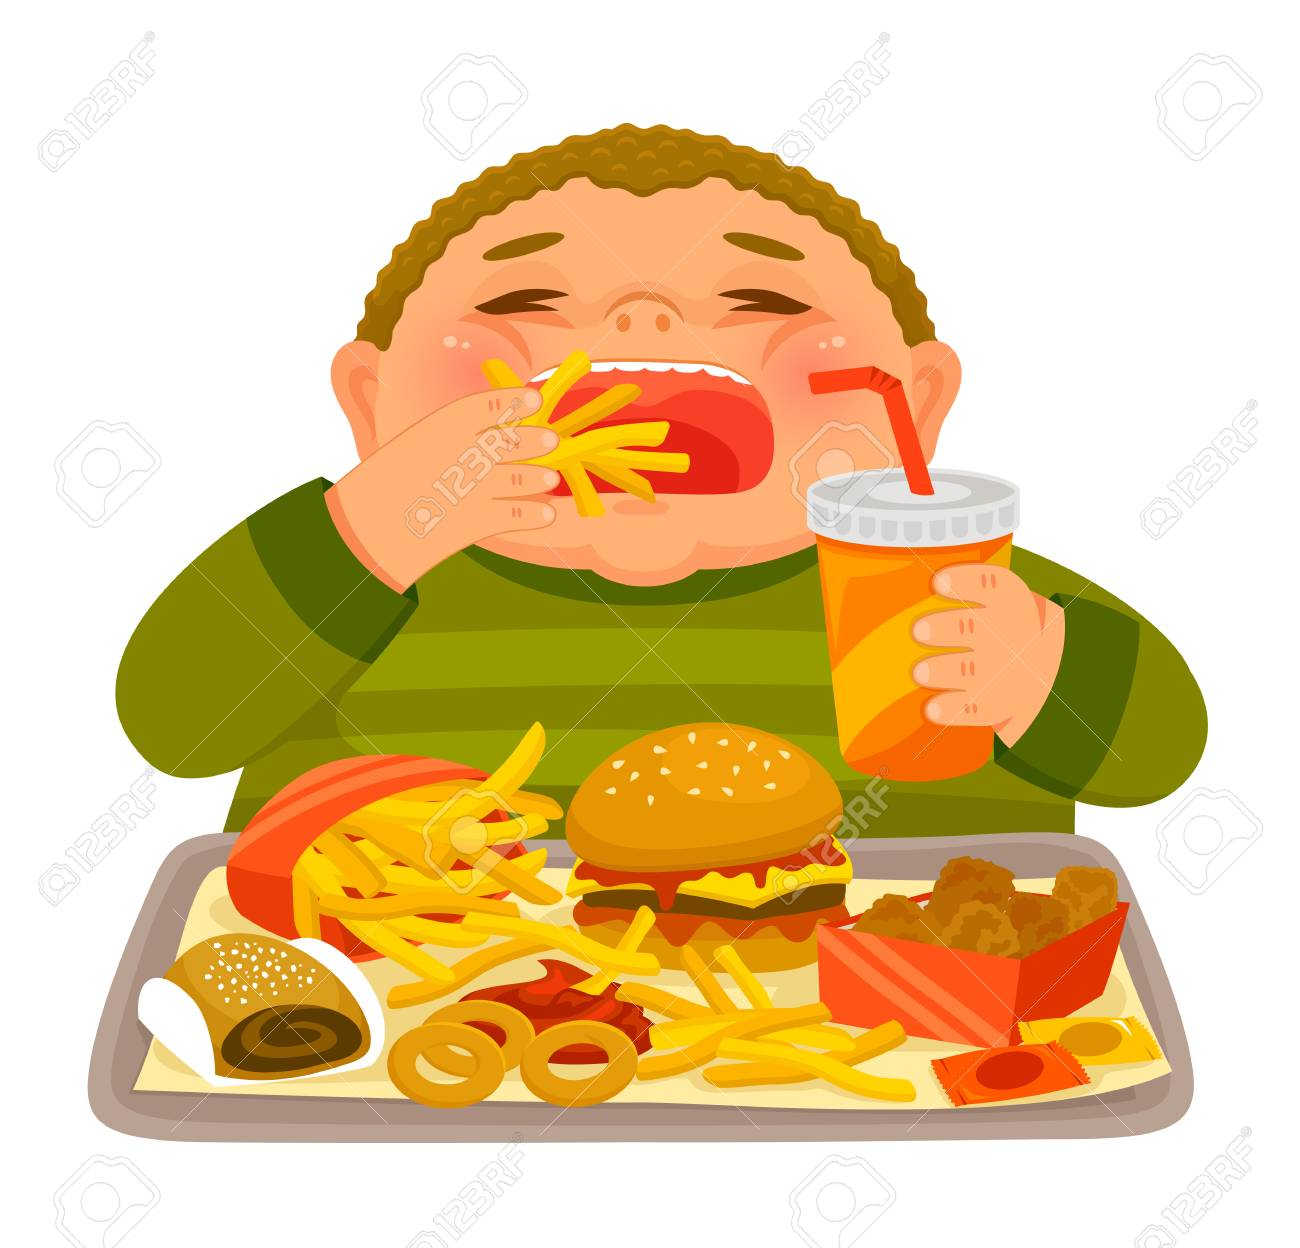 Overweight boy mindlessly eating large amounts of junk food.